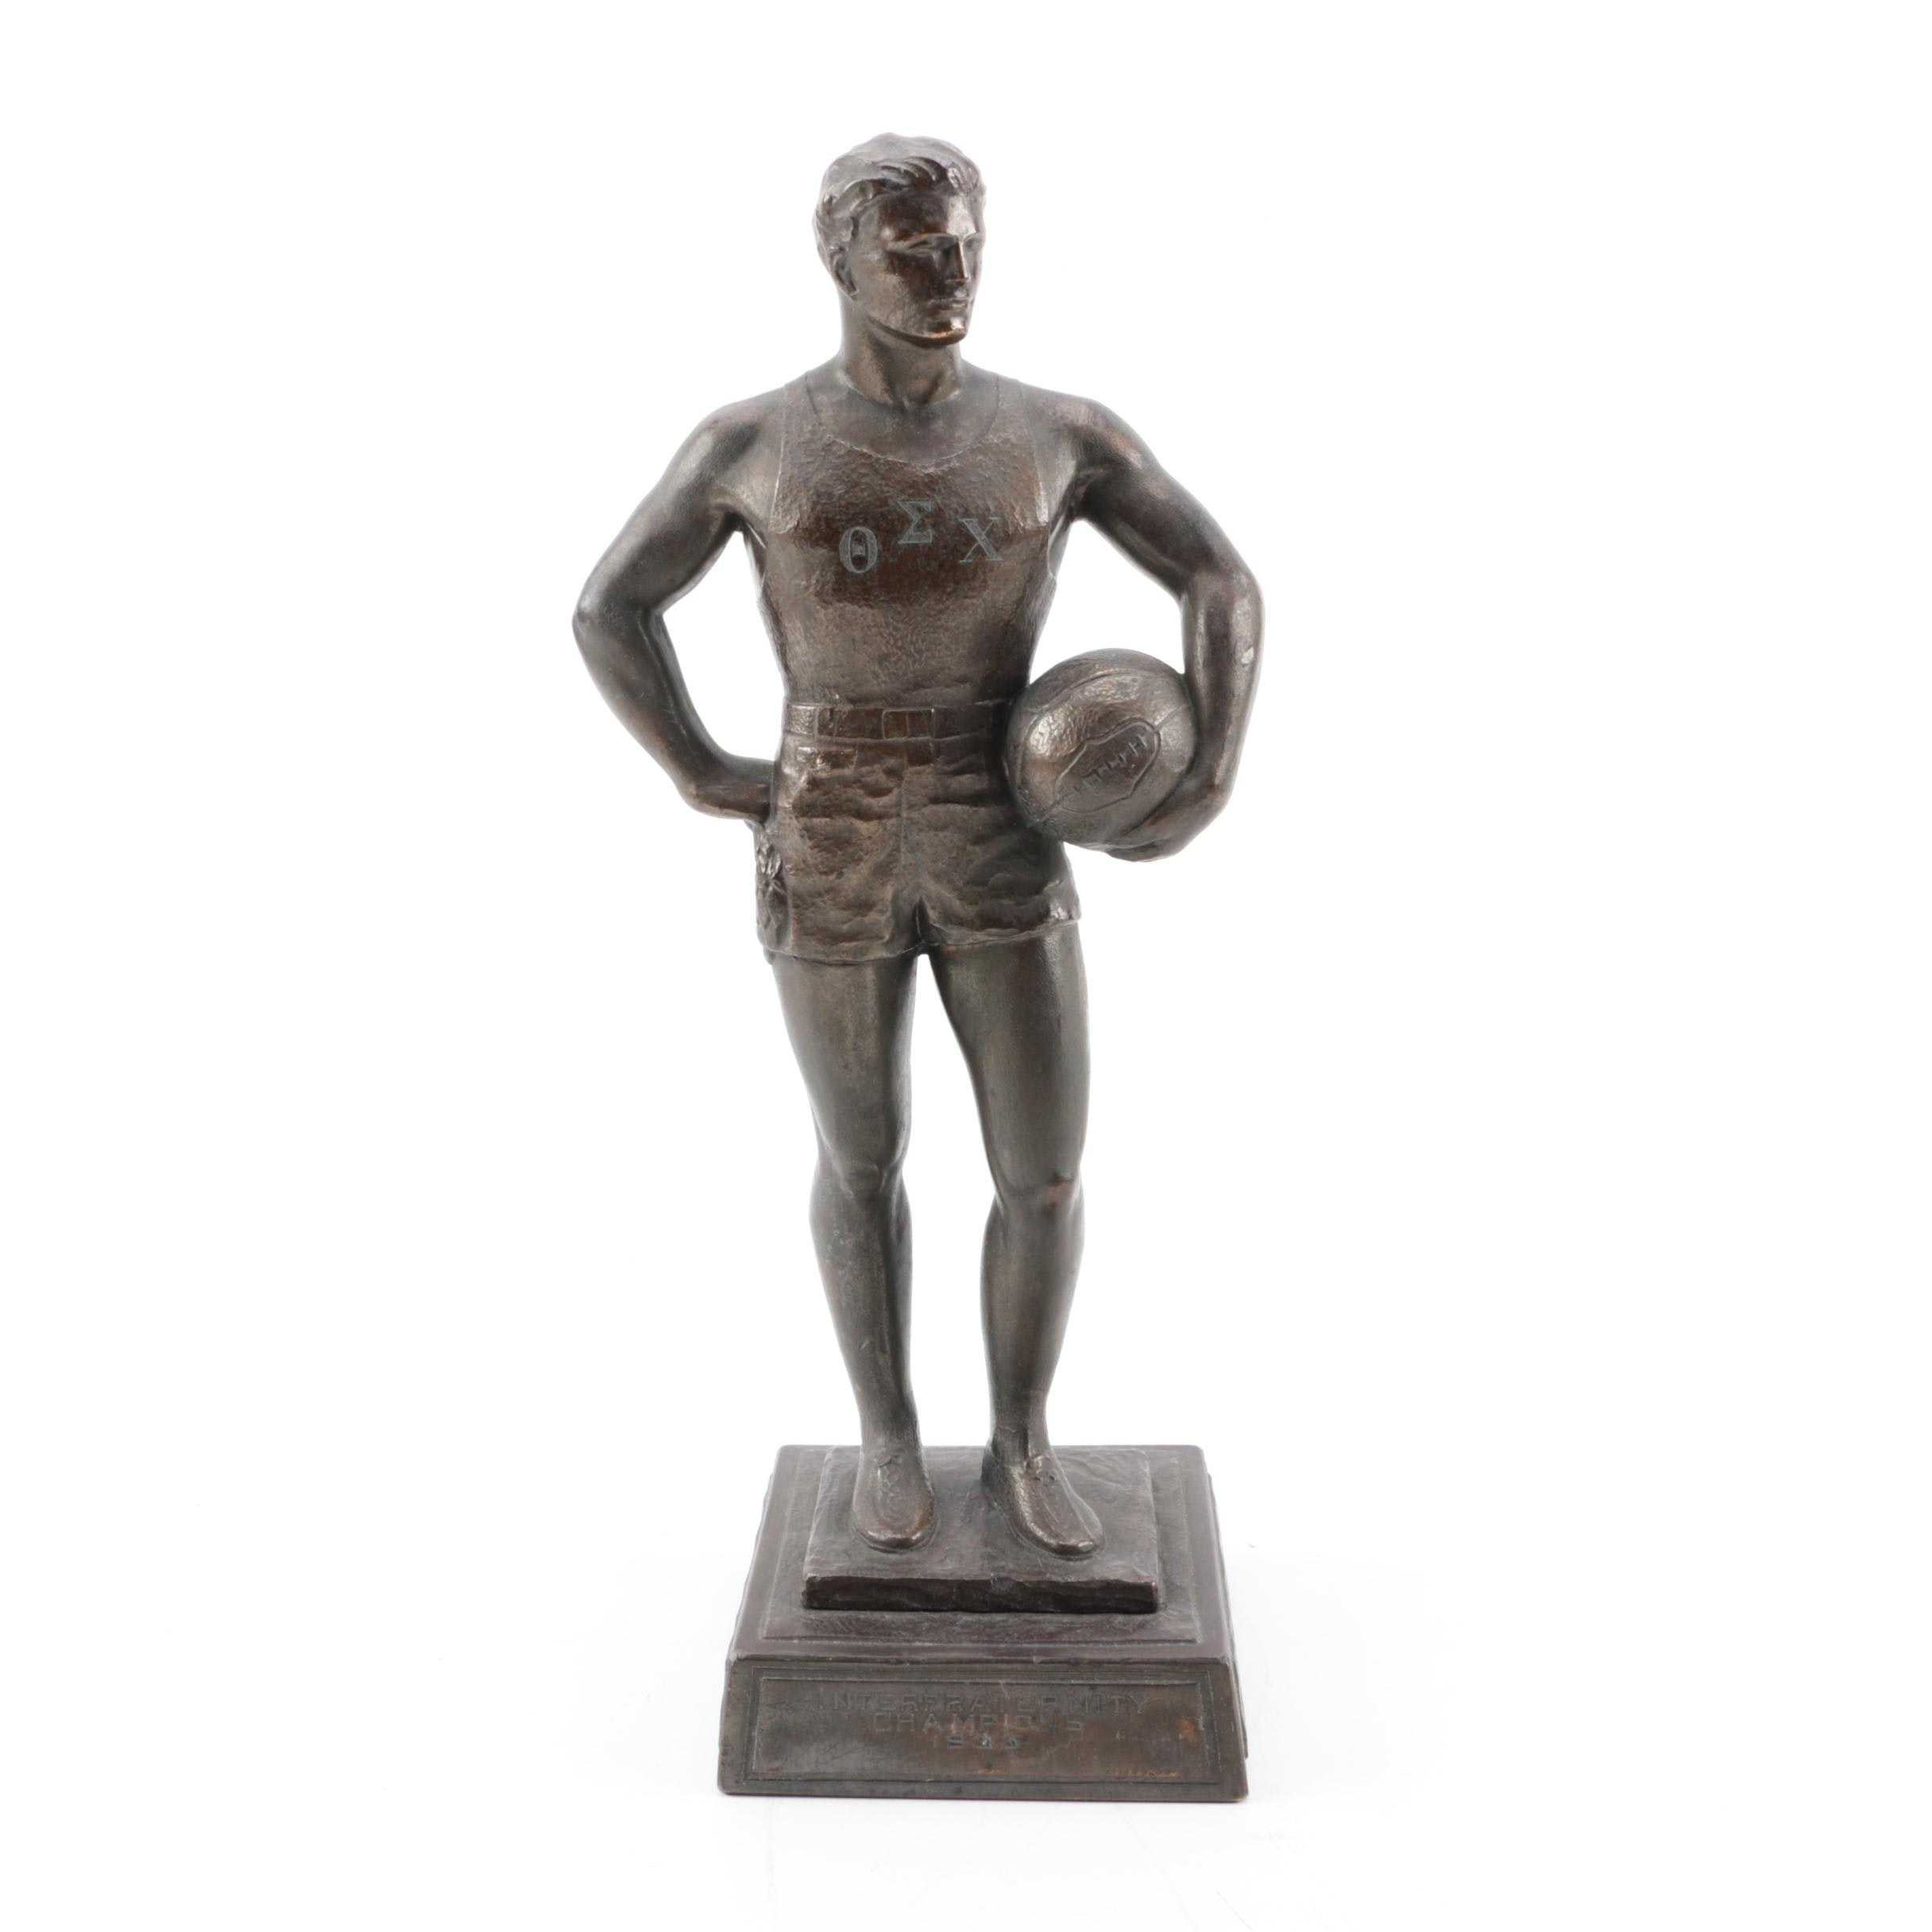 Interfraternity Basketball Championship Bronze Metallic Trophy, 1933